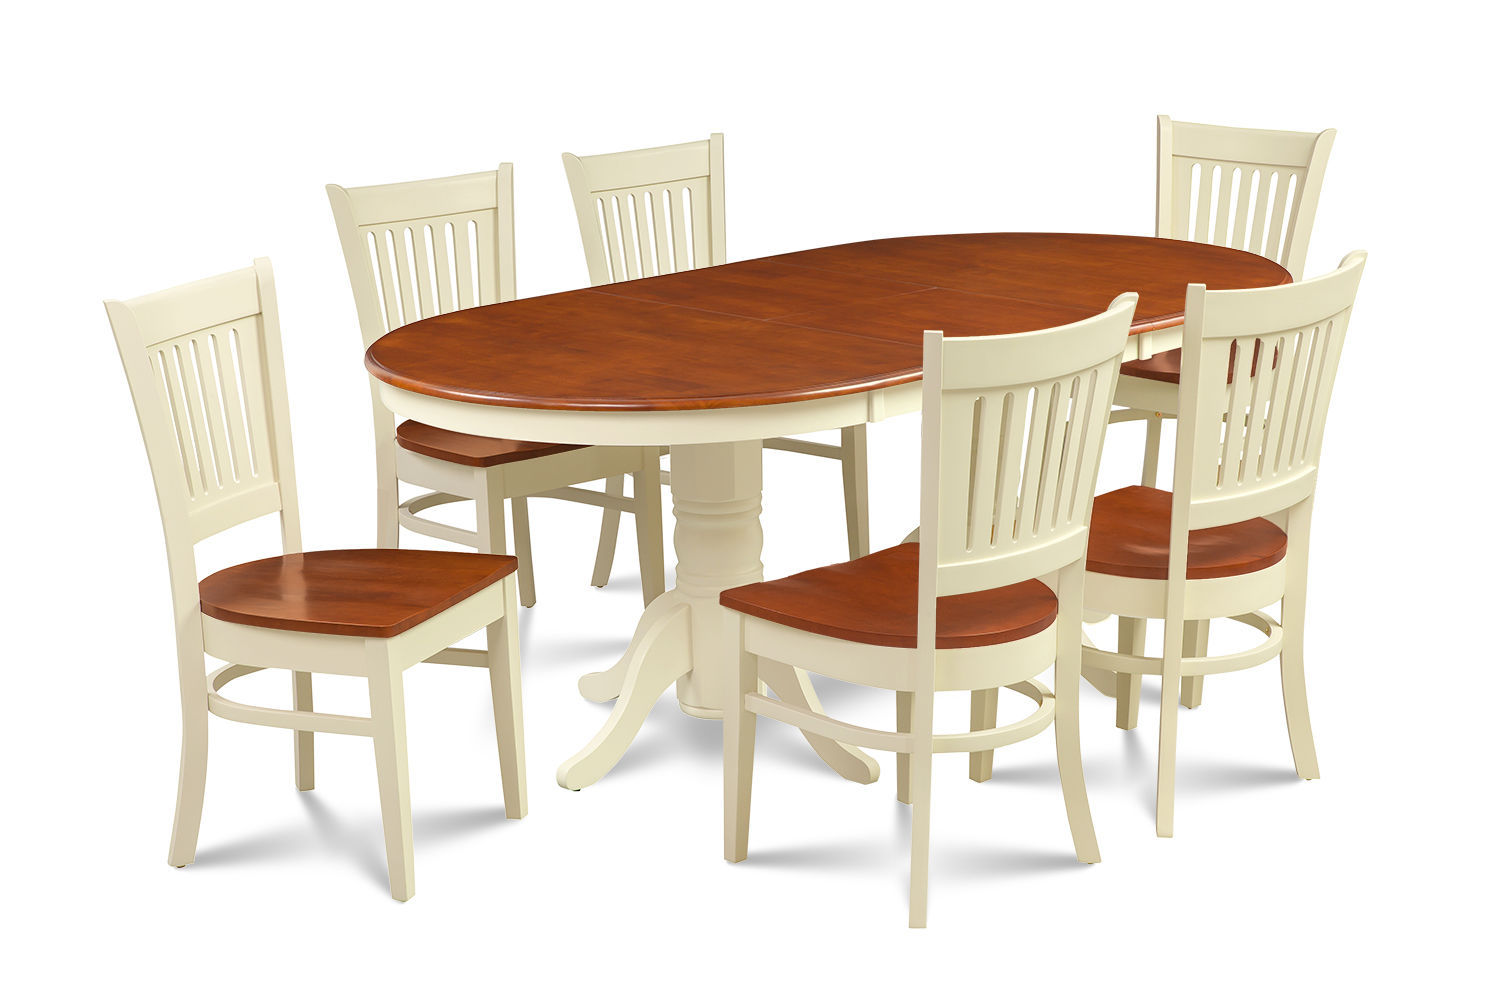 """7 PC OVAL DINING ROOM SET 42""""x78"""" TABLE & 6 WOODEN CHAIRS IN BUTTERMILK & CHERRY"""